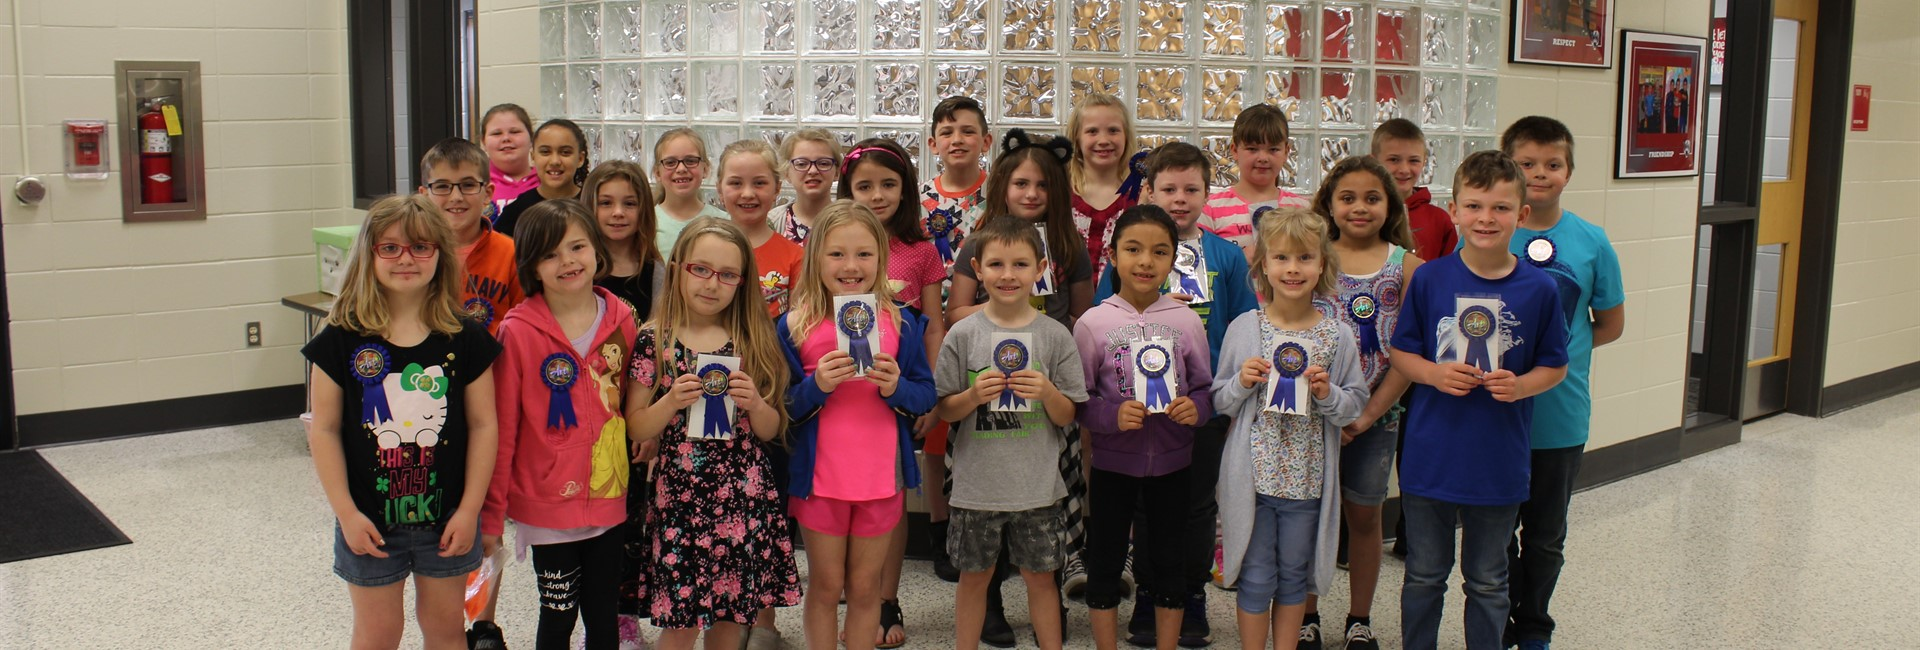 Congratulations to our 2018 Art Show Ribbon Winners grades 1-3